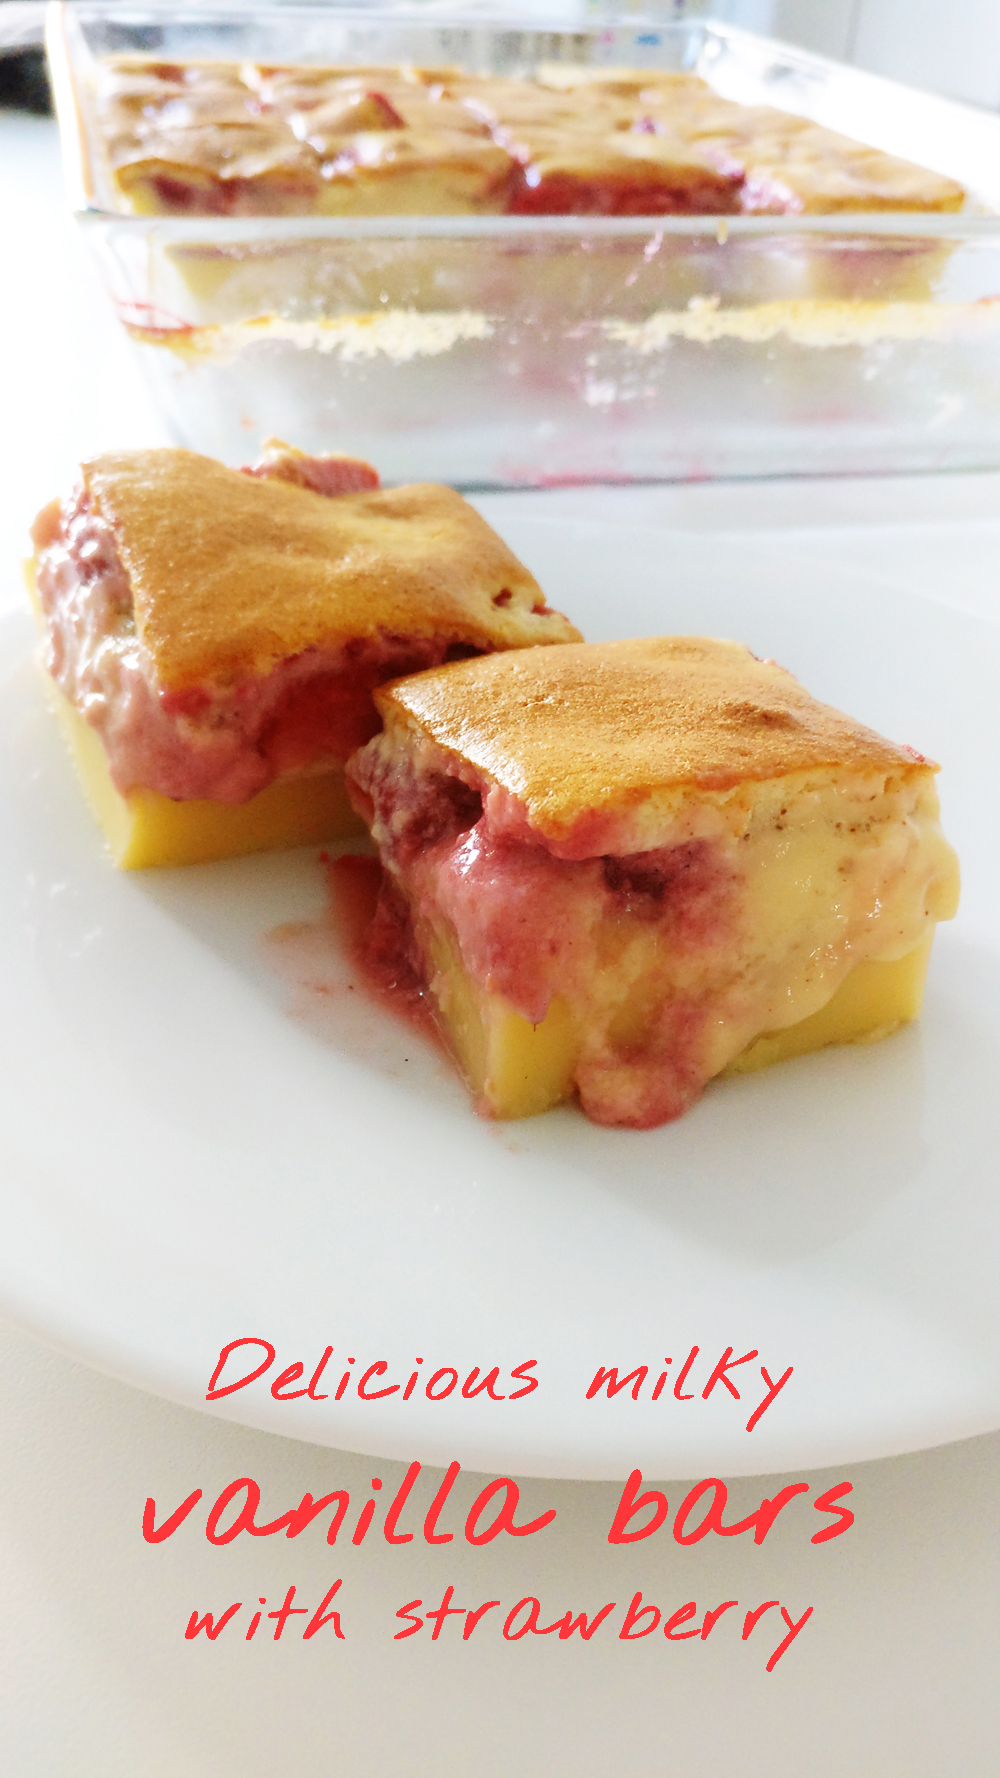 Delicious milky vanilla bars with strawberry | Aliz's Wonderland